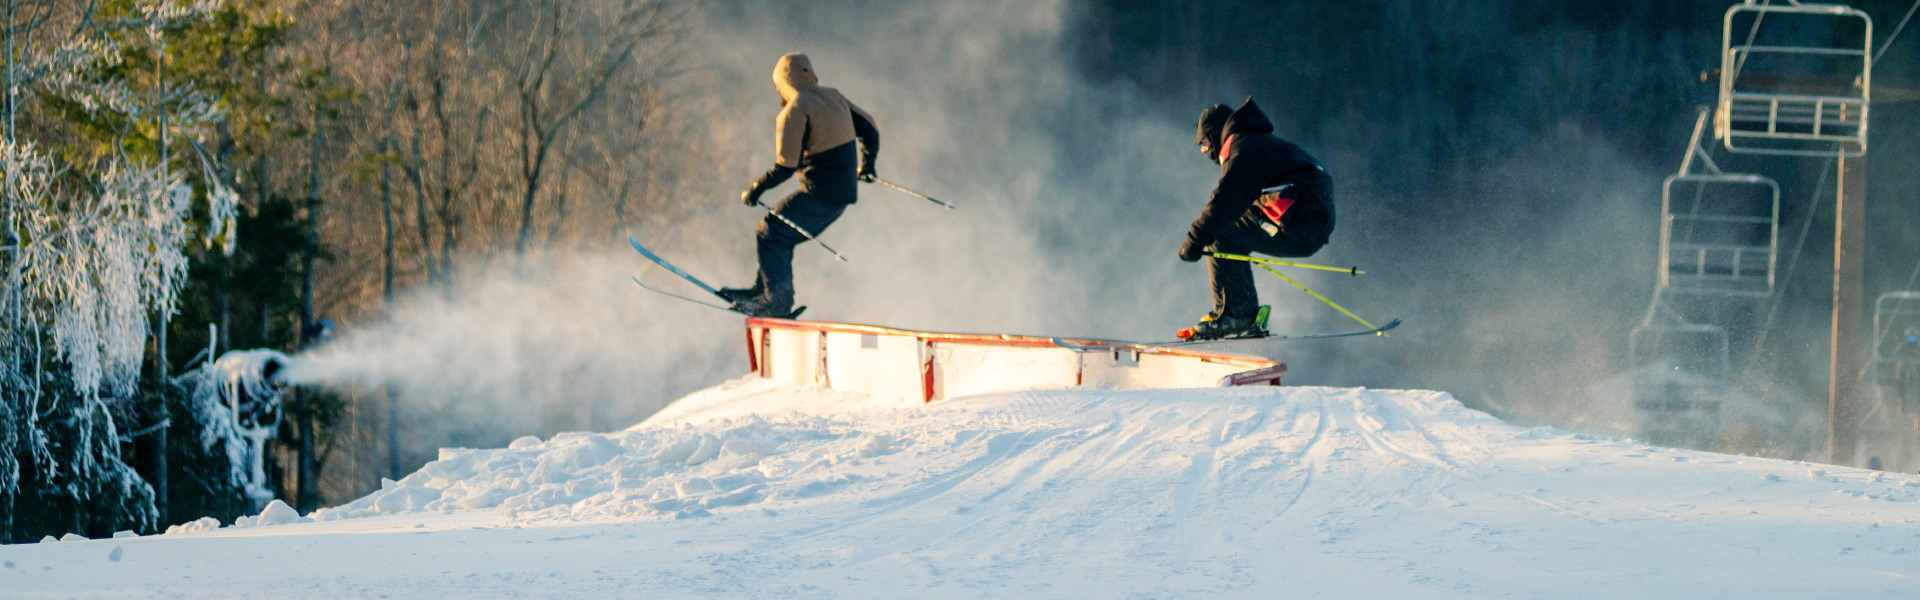 "Image of 2 skiers on ""S"" rail feature in terrain park"